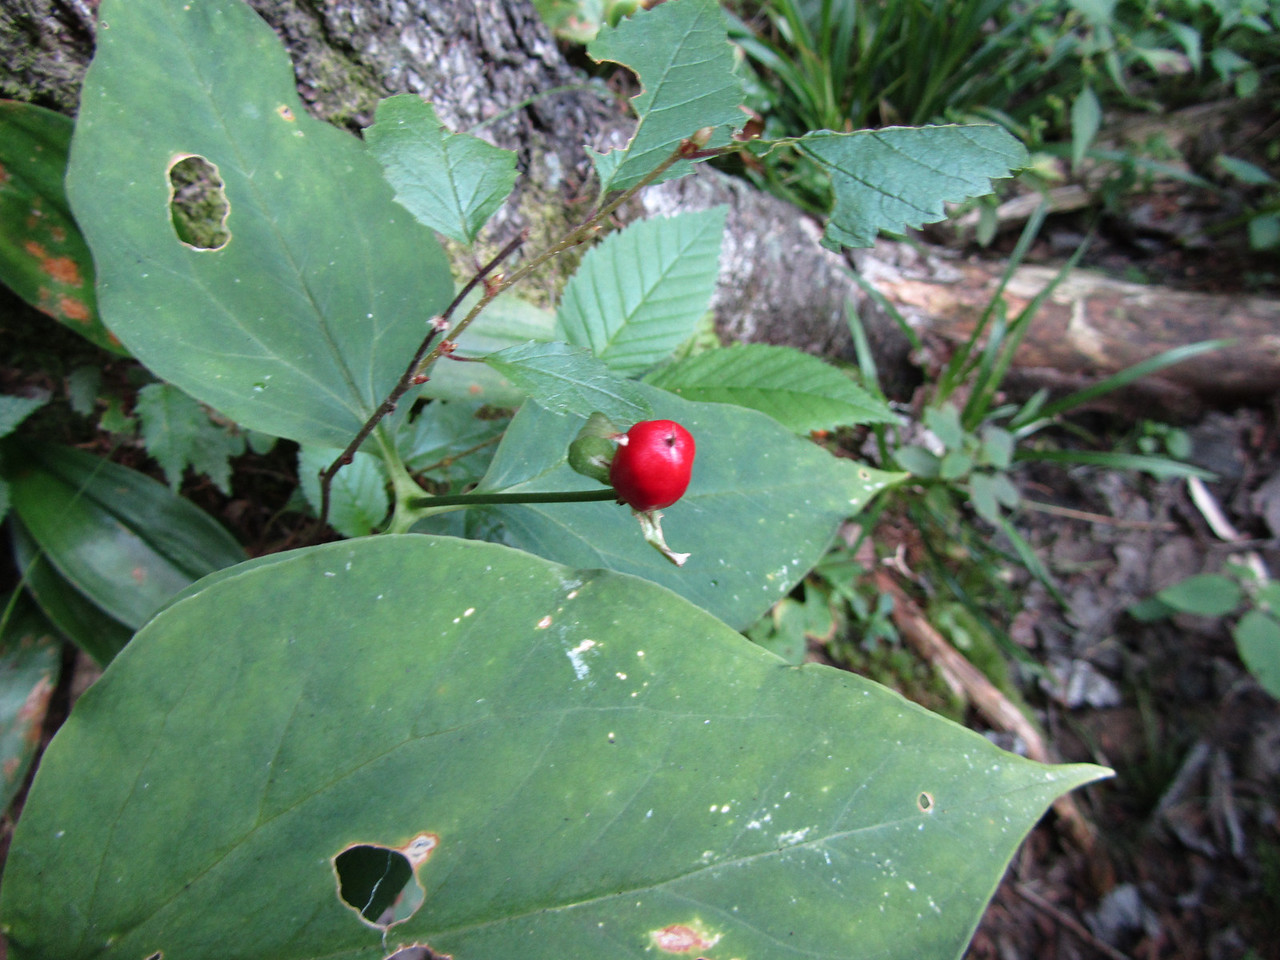 Interesting red berry. Not sure what type but I was hoping Joyel would try one to see if it was safe to eat.